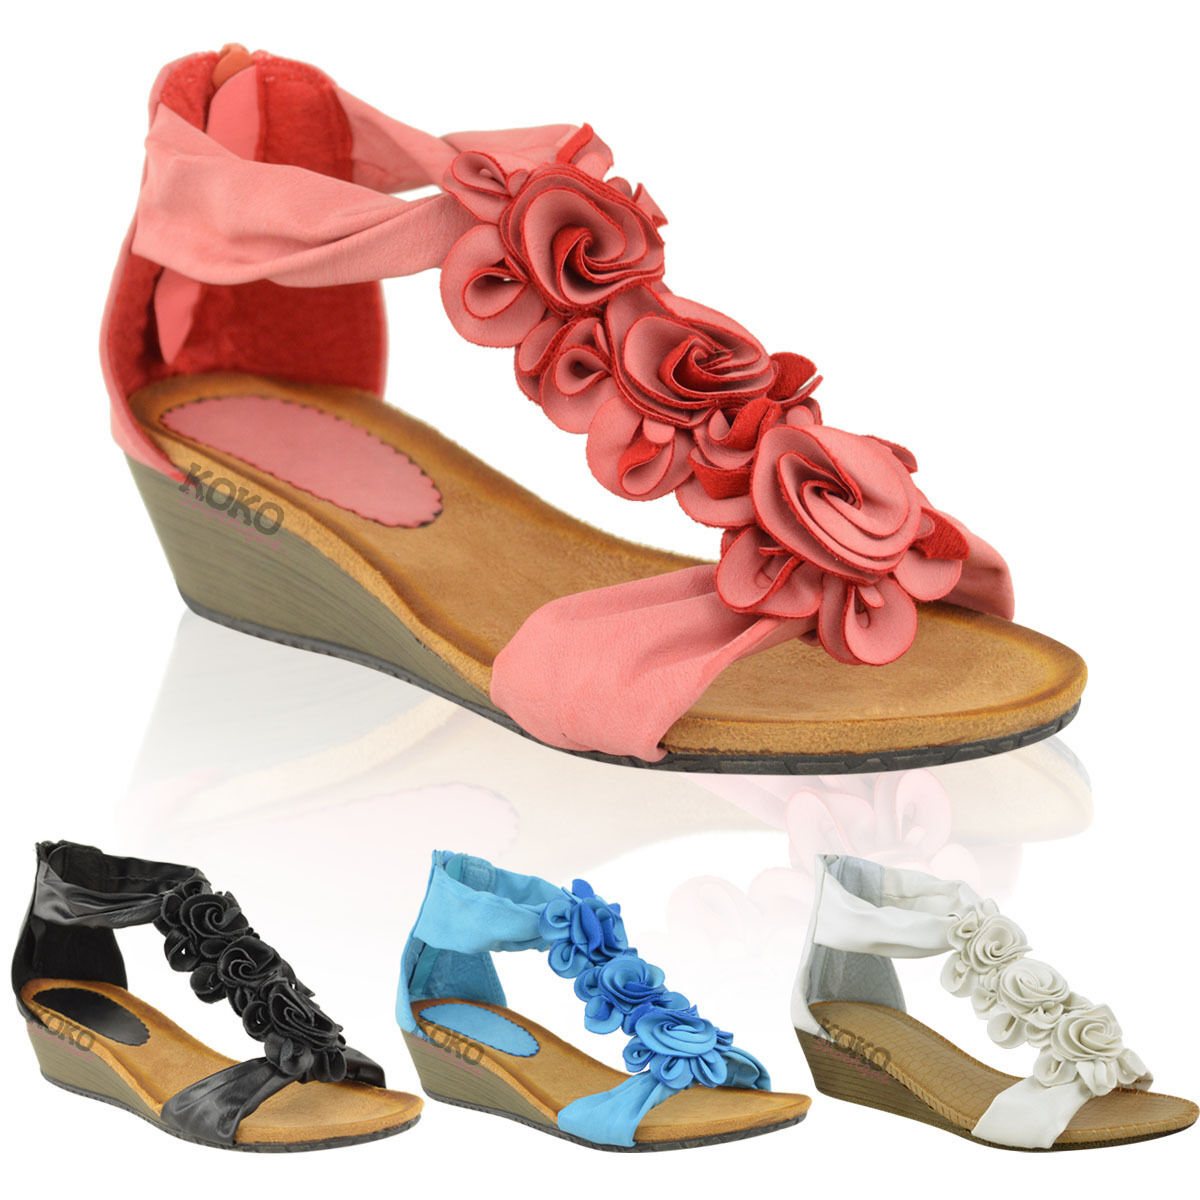 Man/Woman WOMENS LADIES LOW SUMMER SANDALS STRAPPY FLOWERS LOW LADIES HEEL FLAT WEDGES SHOES SIZE New varieties are launched Beautiful Seasonal hot sale GV575 2f787f